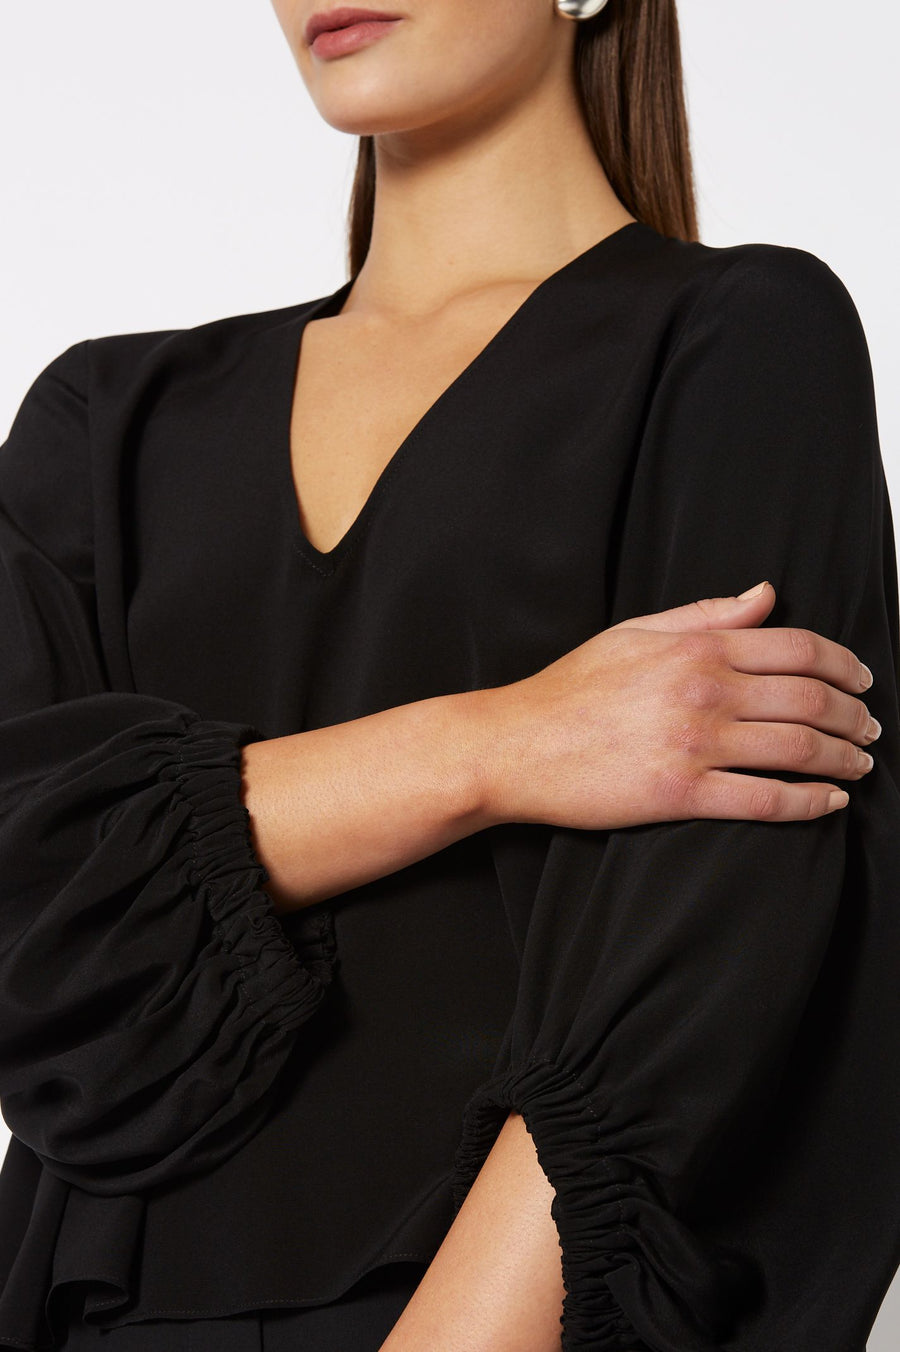 CDC V Neck Blouse Black, Relaxed Fit, ¾ Sleeves, elasticized cuffs, V- neckline